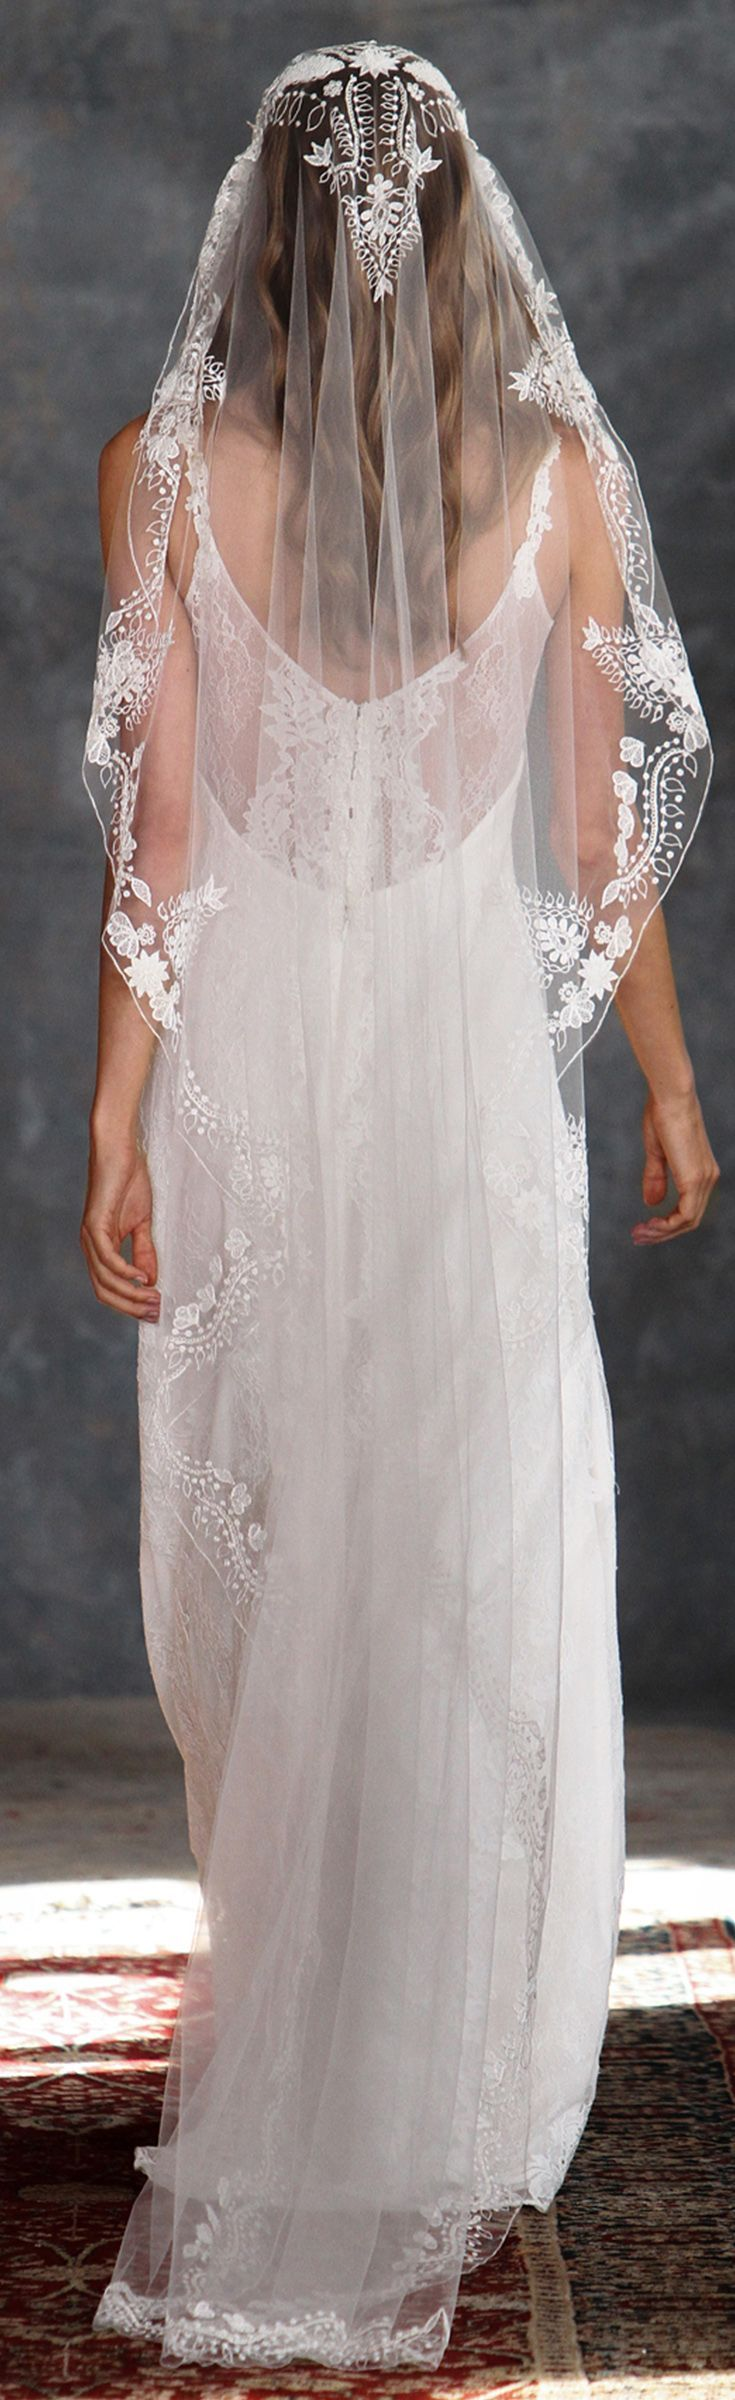 Cotton threadwork and embroidery form an organic motif of vines and leaves along the edge of tulle. This veil adds a perfect laid-back vibe with a nod to bohemian style. The embellishment remains ivory || Claire Pettibone Veil